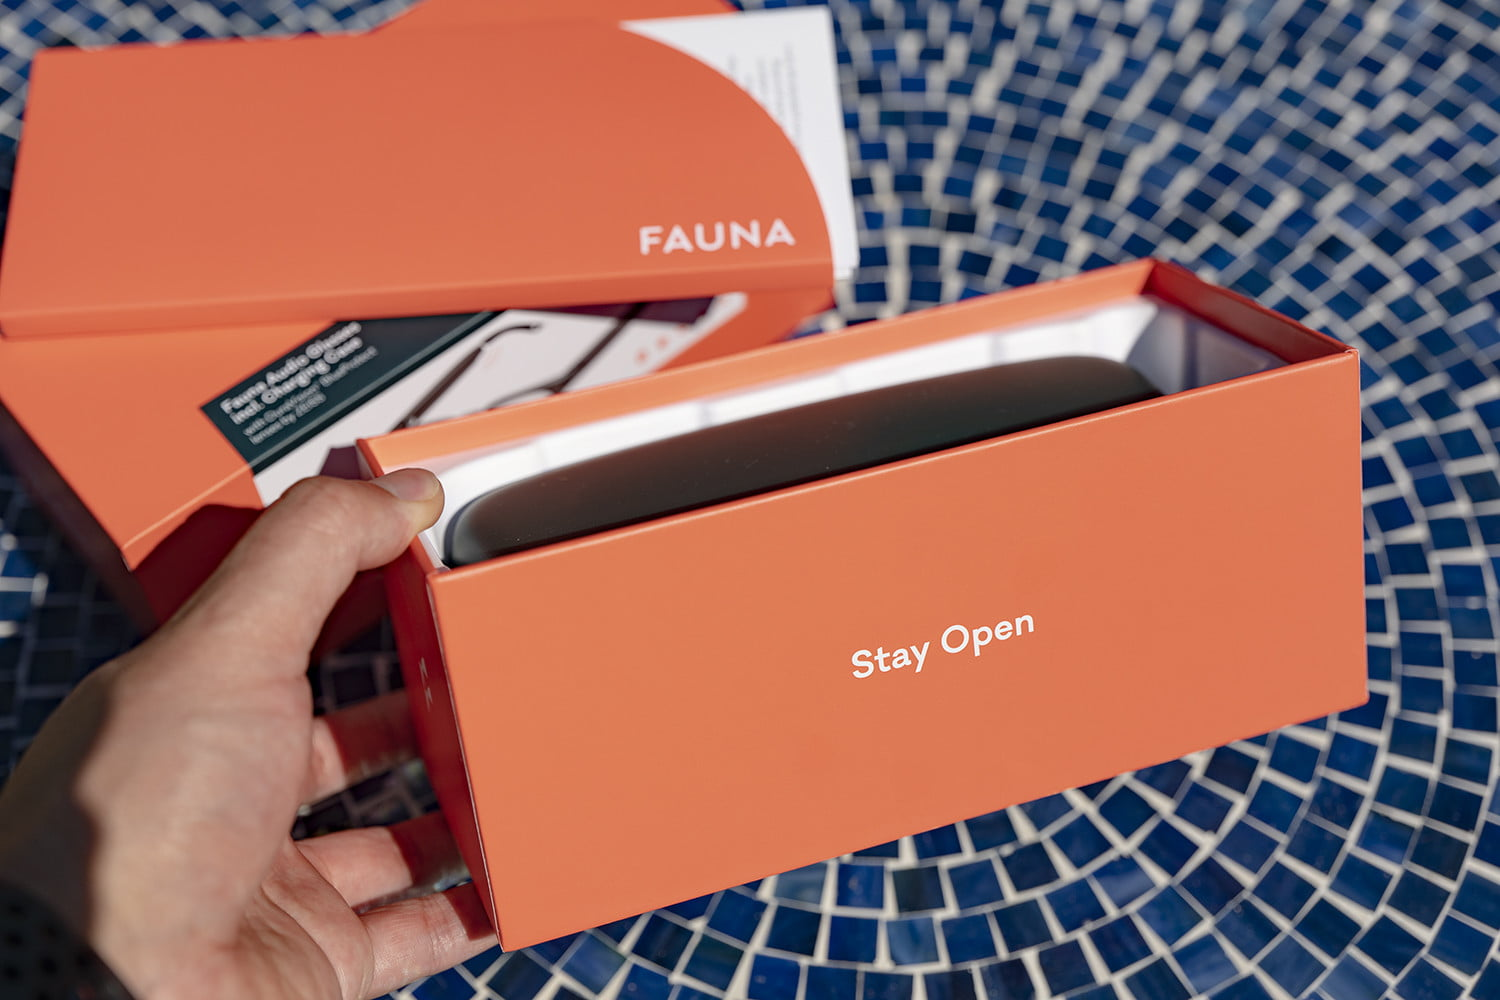 fauna audio glasses review 10